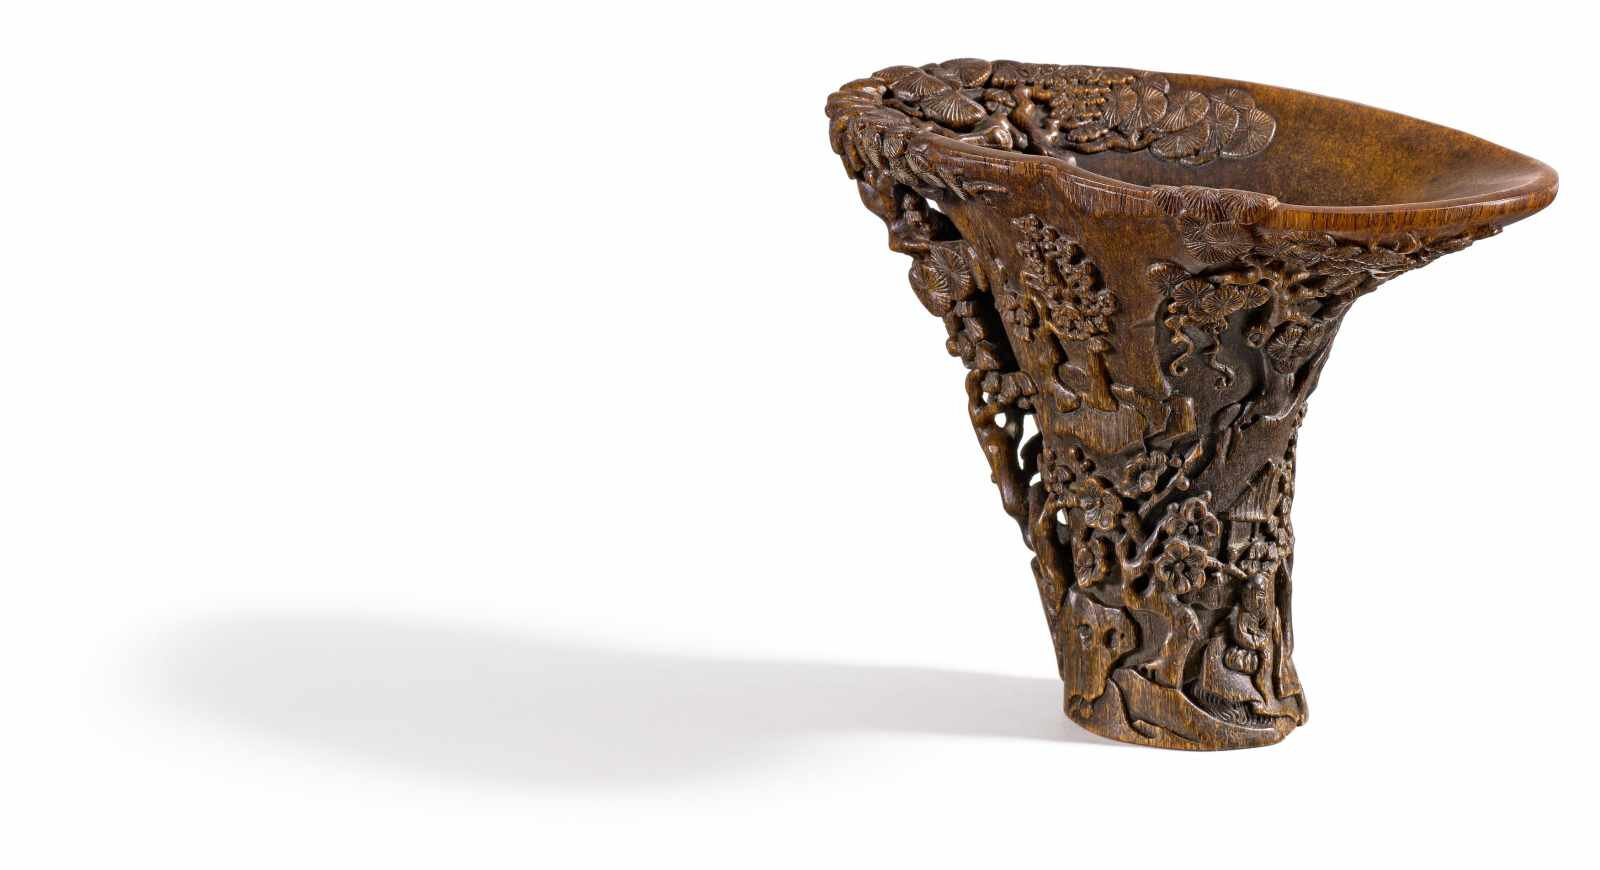 Elegant rhinoceros horn libation cup with ermit in a landscapeith high pines, China, Late Qing dynasty